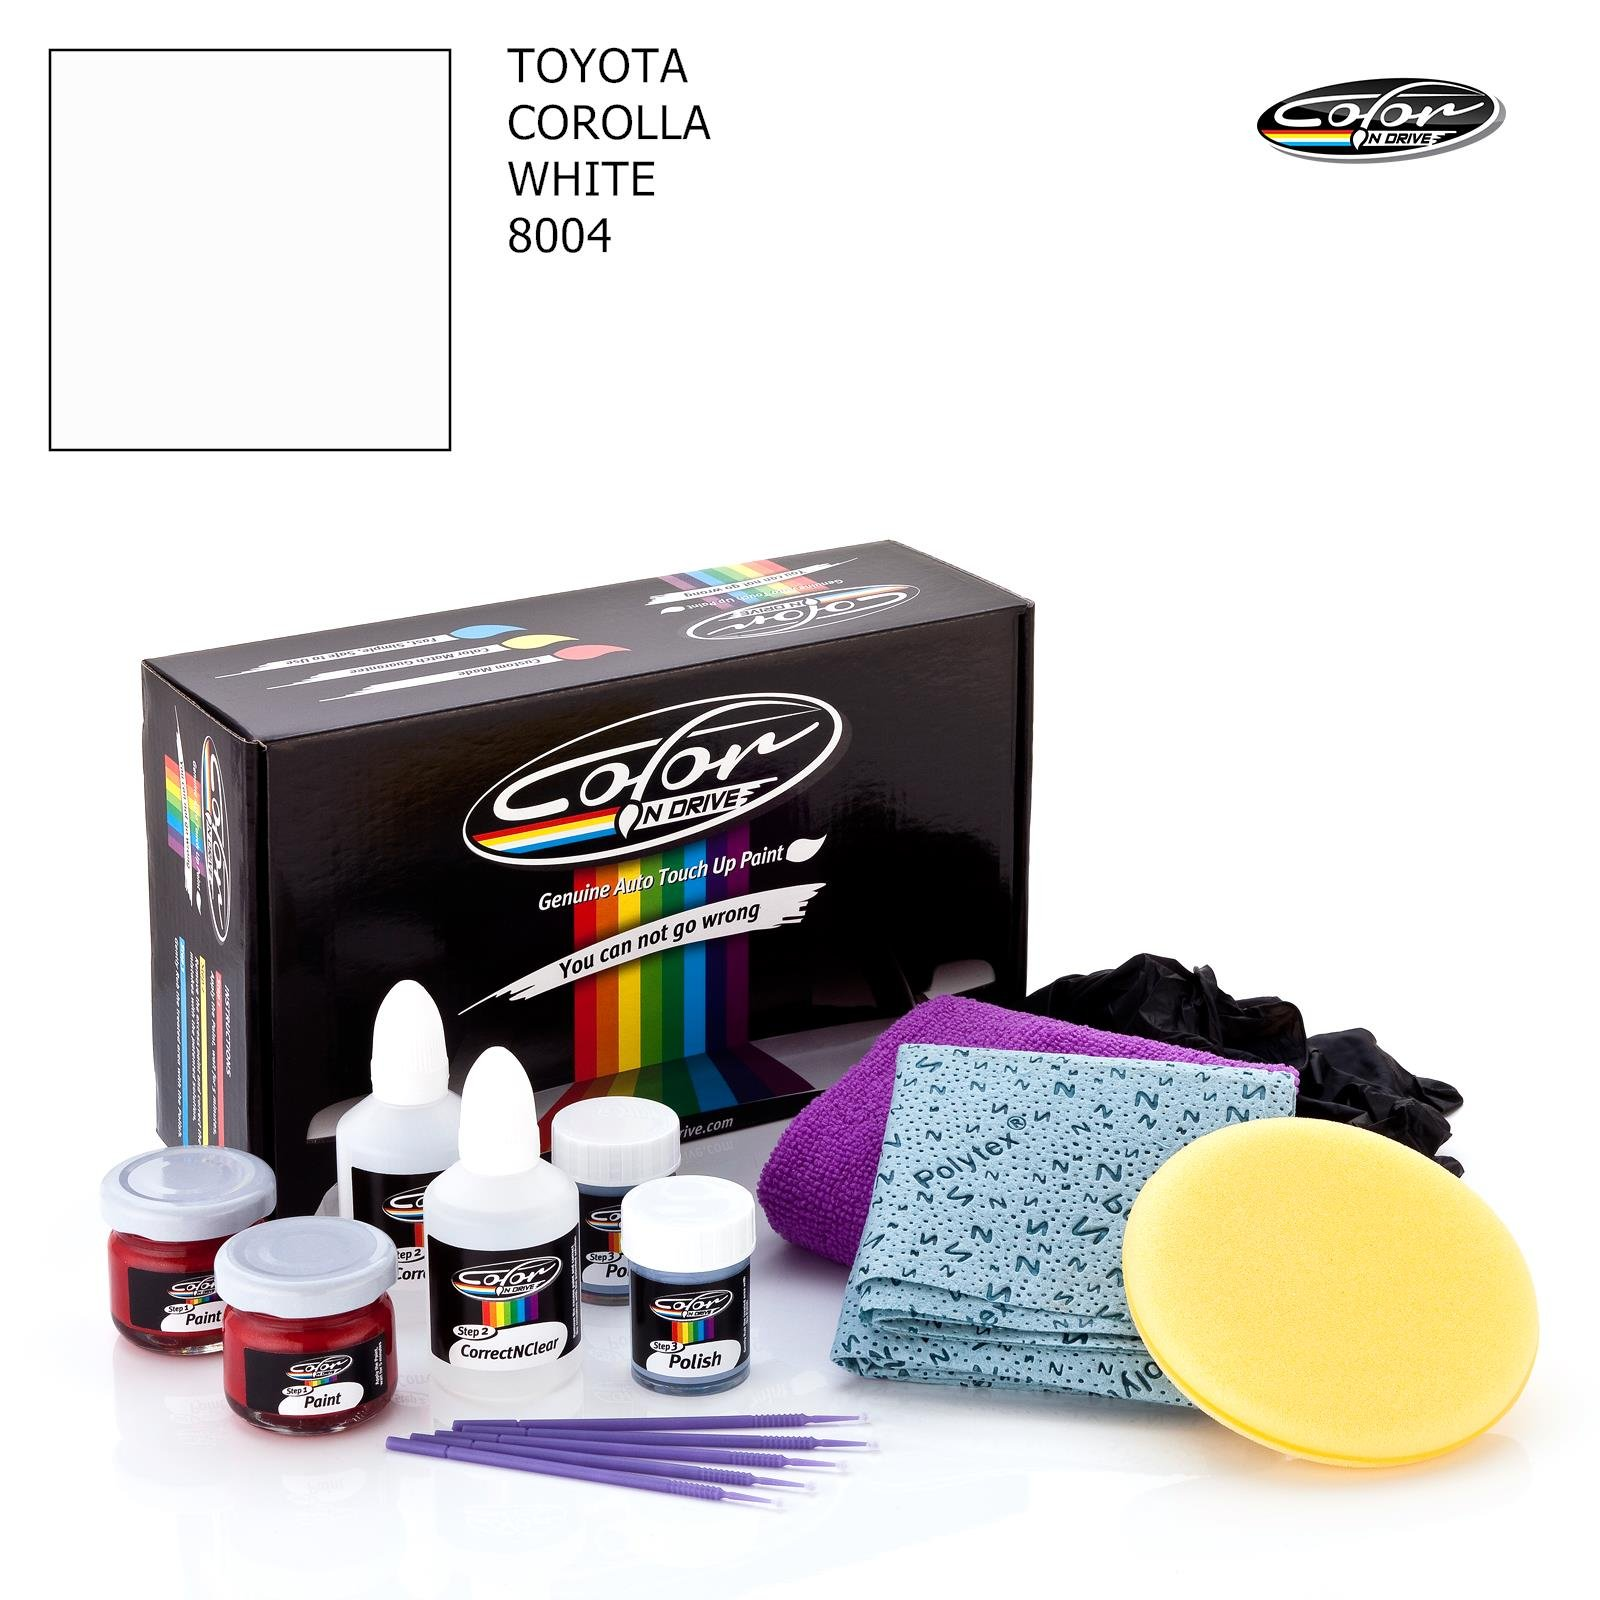 TOYOTA Corolla/White - 8004 / Color N Drive Touch UP Paint System for Paint Chips and Scratches/Plus Pack